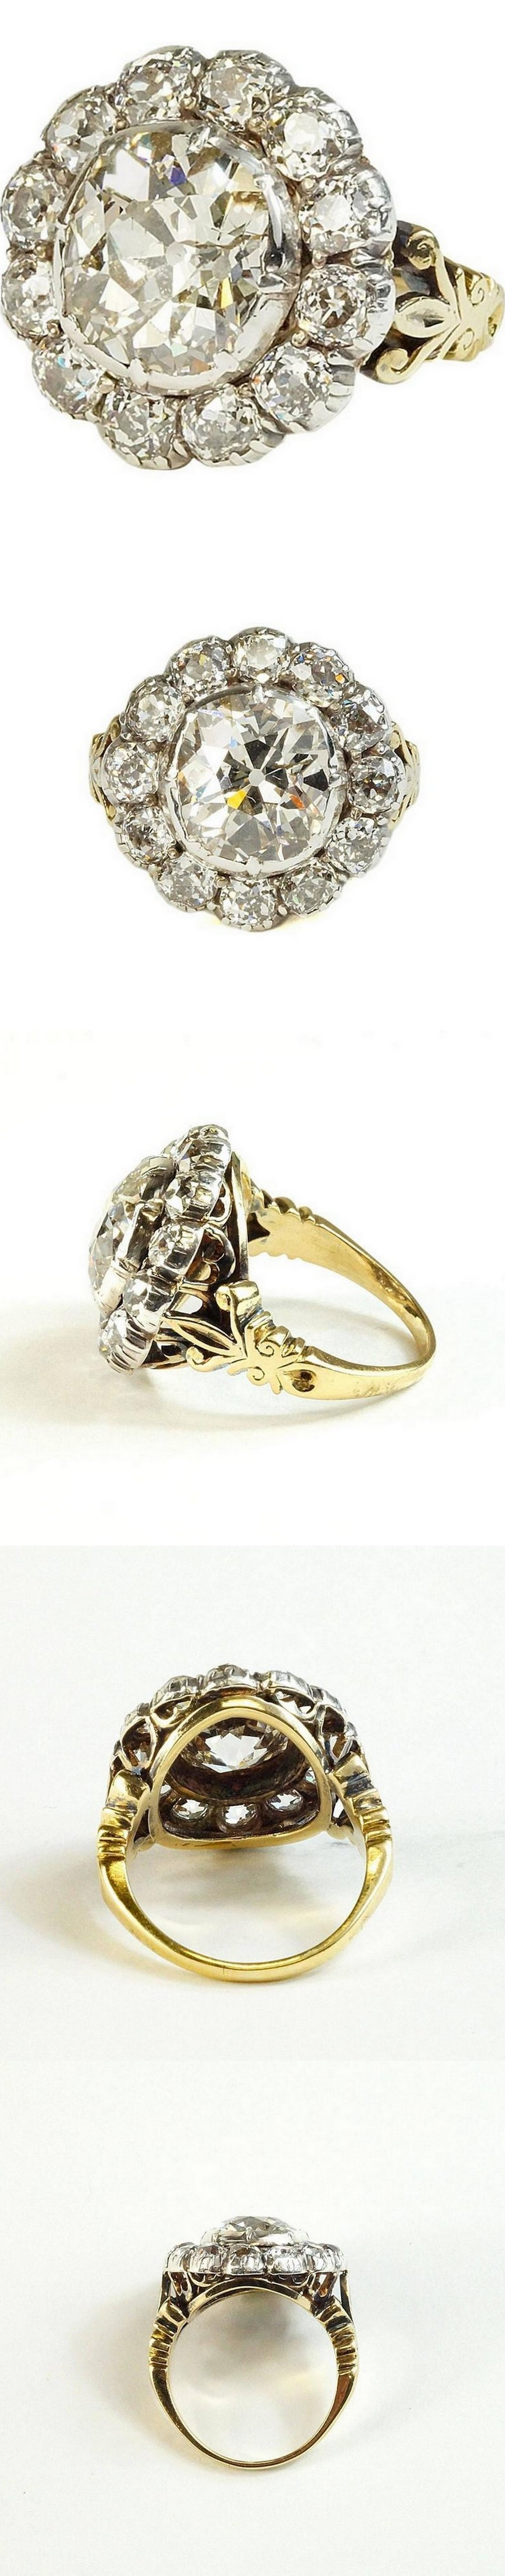 Victorian 19th Century Diamond Ring 8 Carat